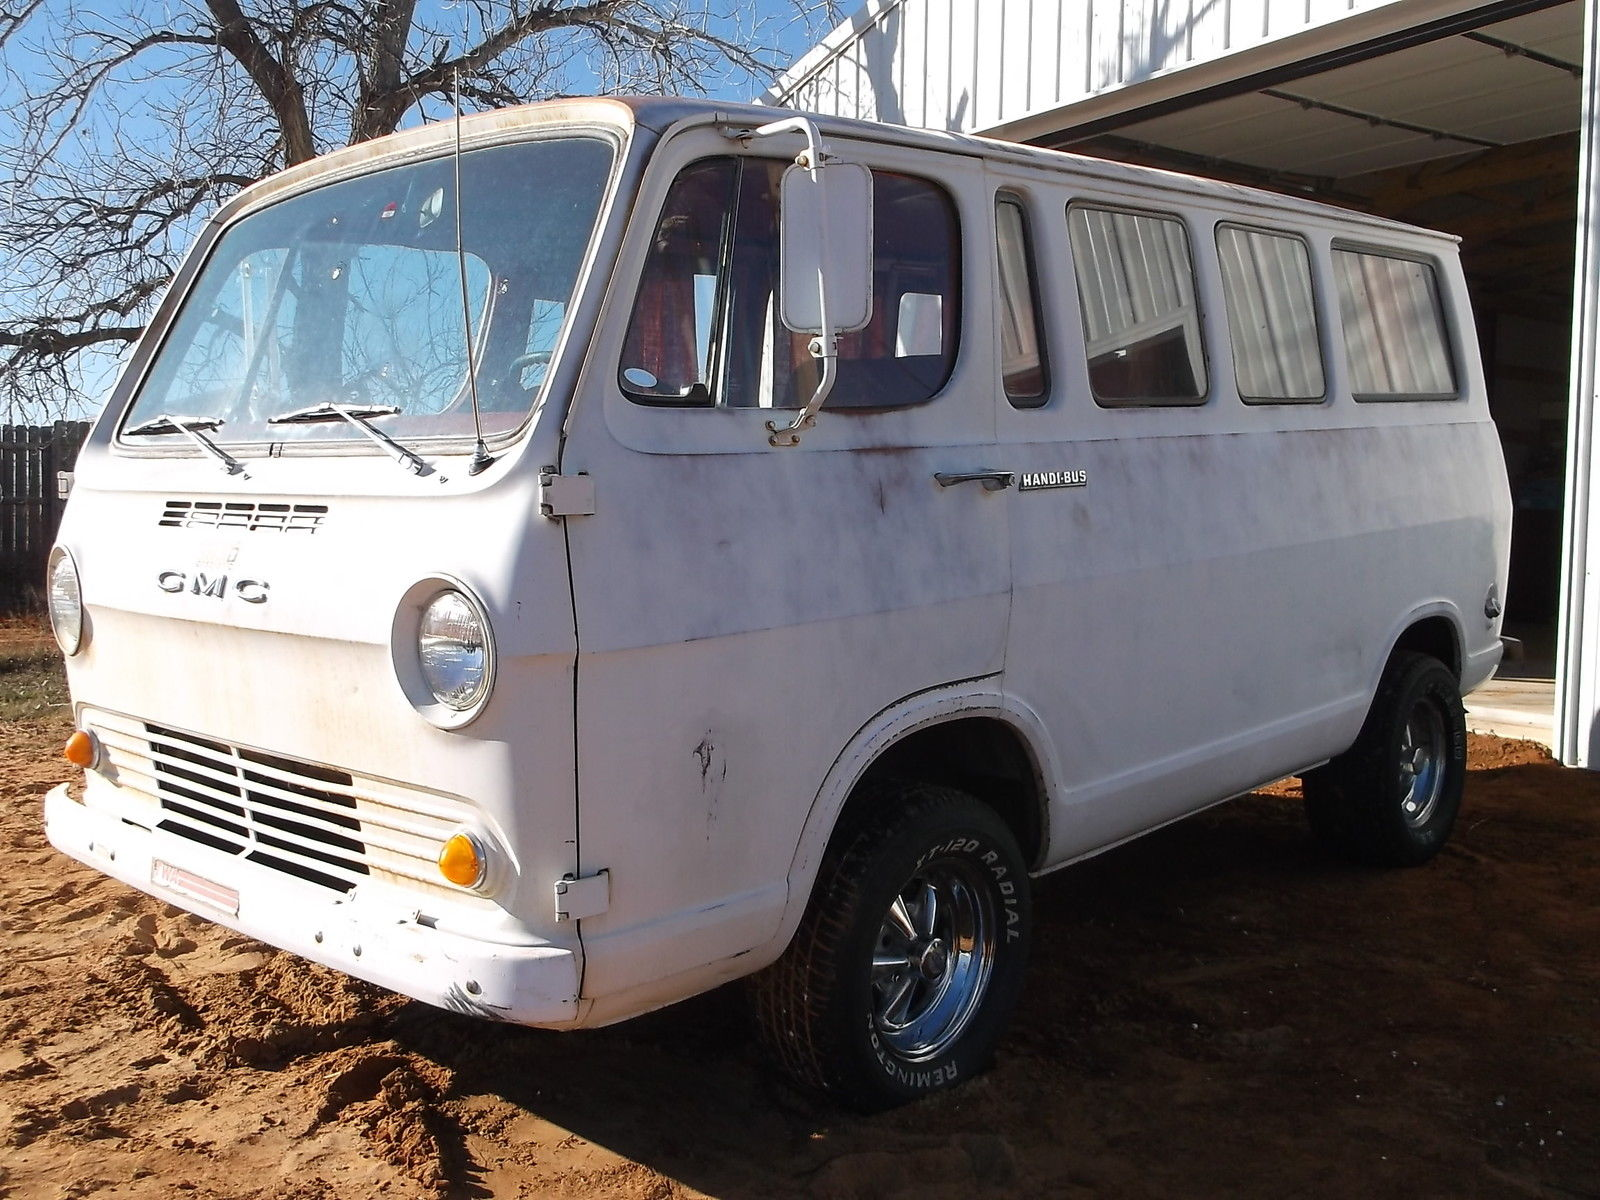 1965 Gmc Chevrolet Handi Bus 90 Nice Van Wagon Very Solid